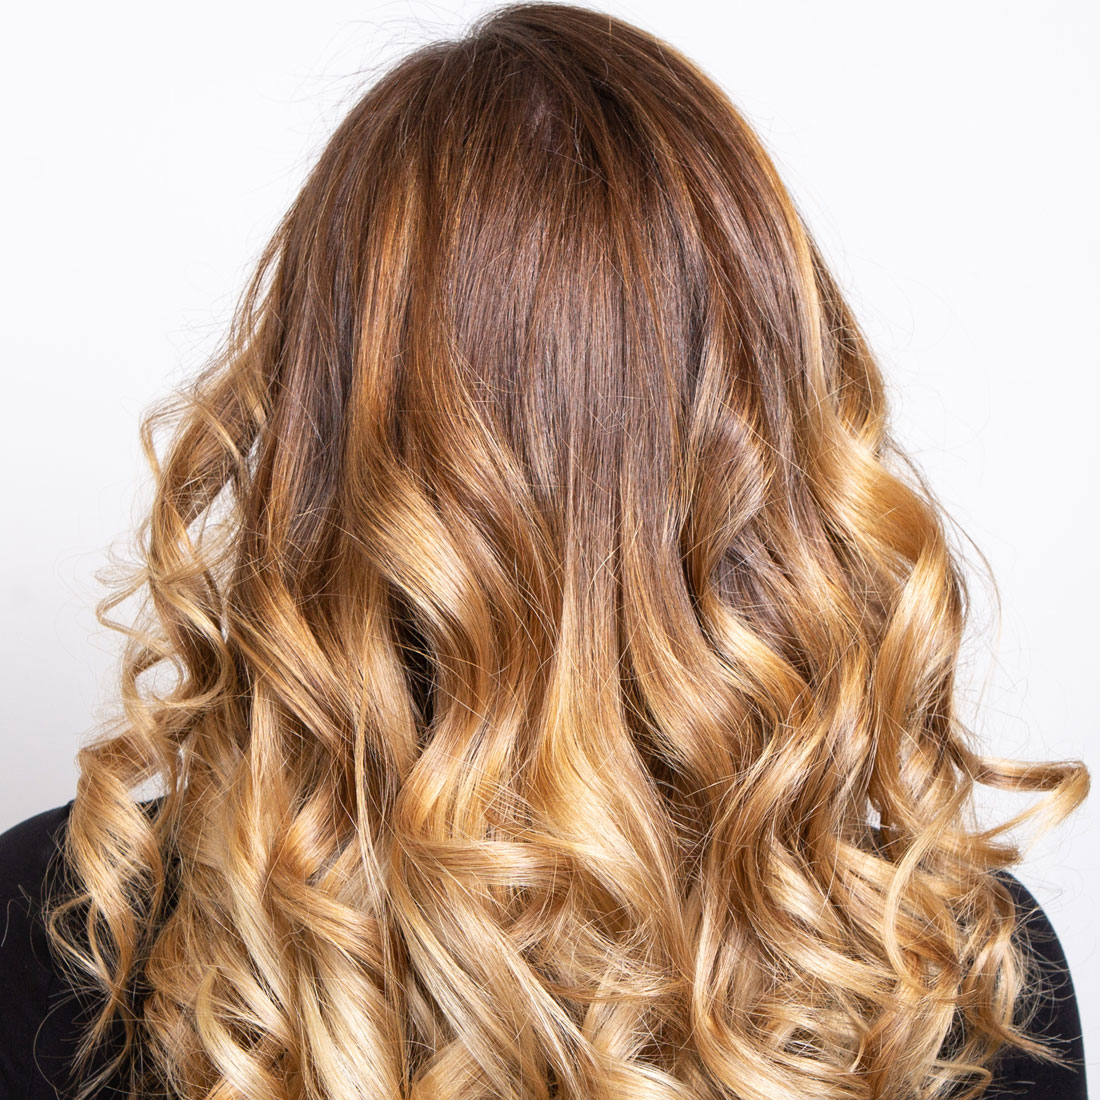 Blond Haired with Balayage